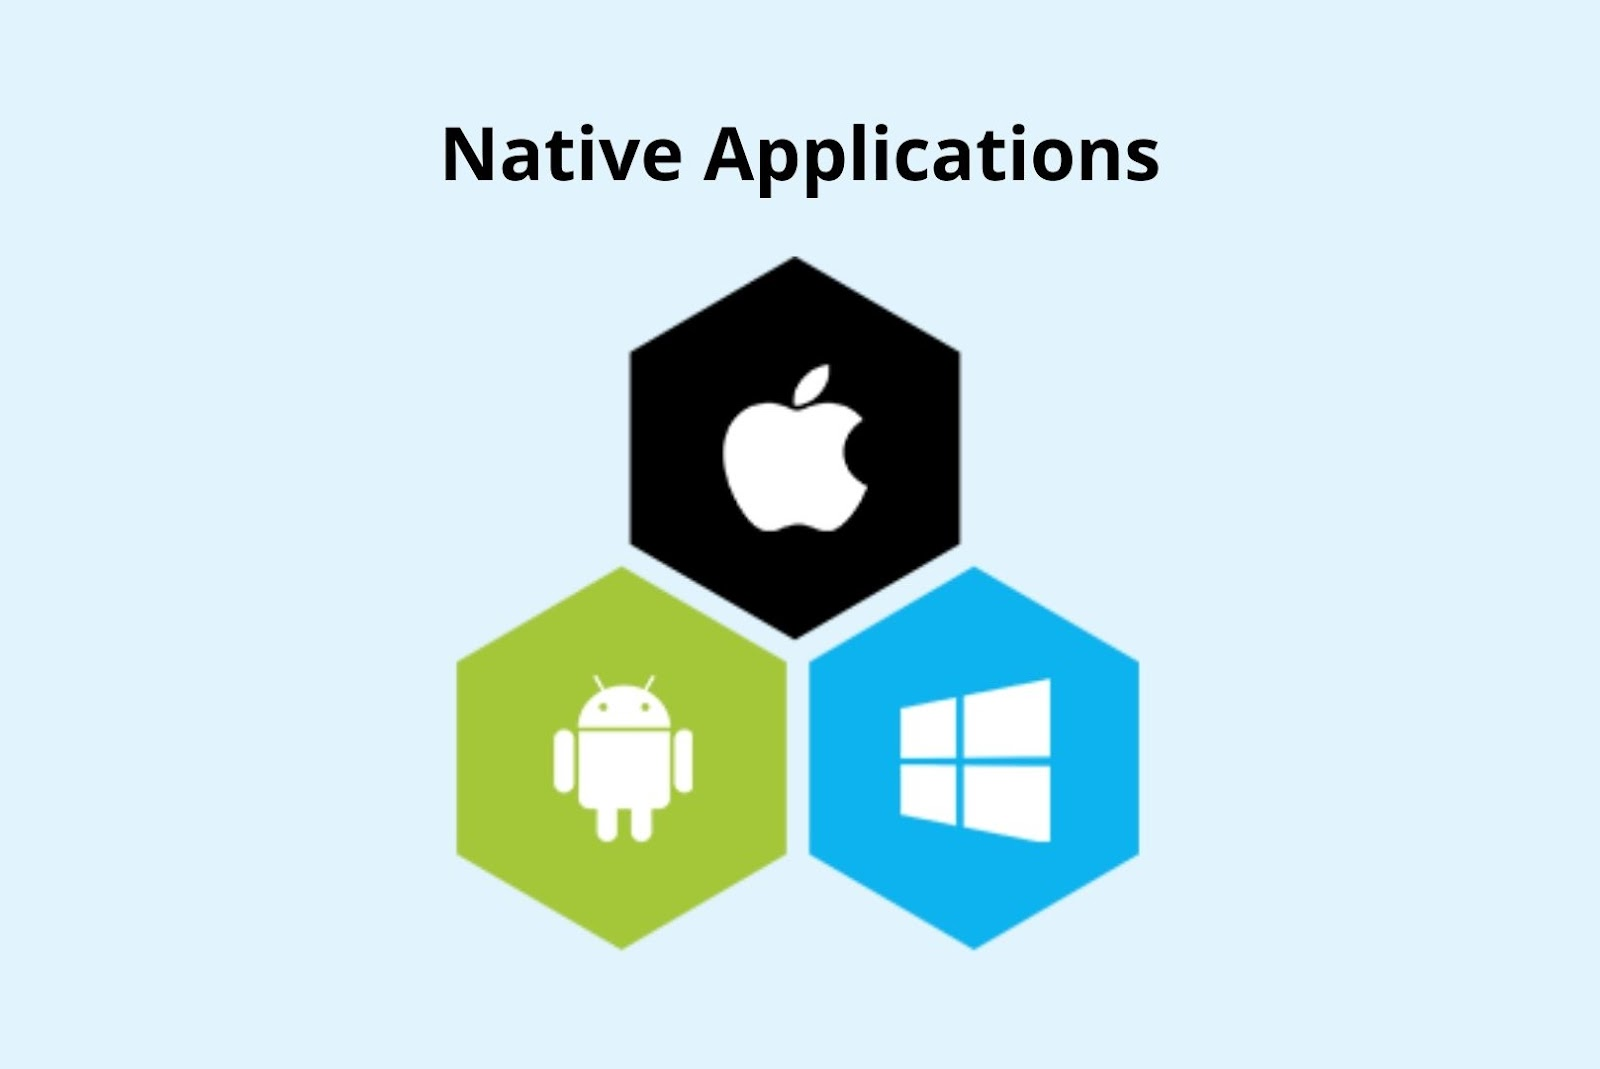 Native applications